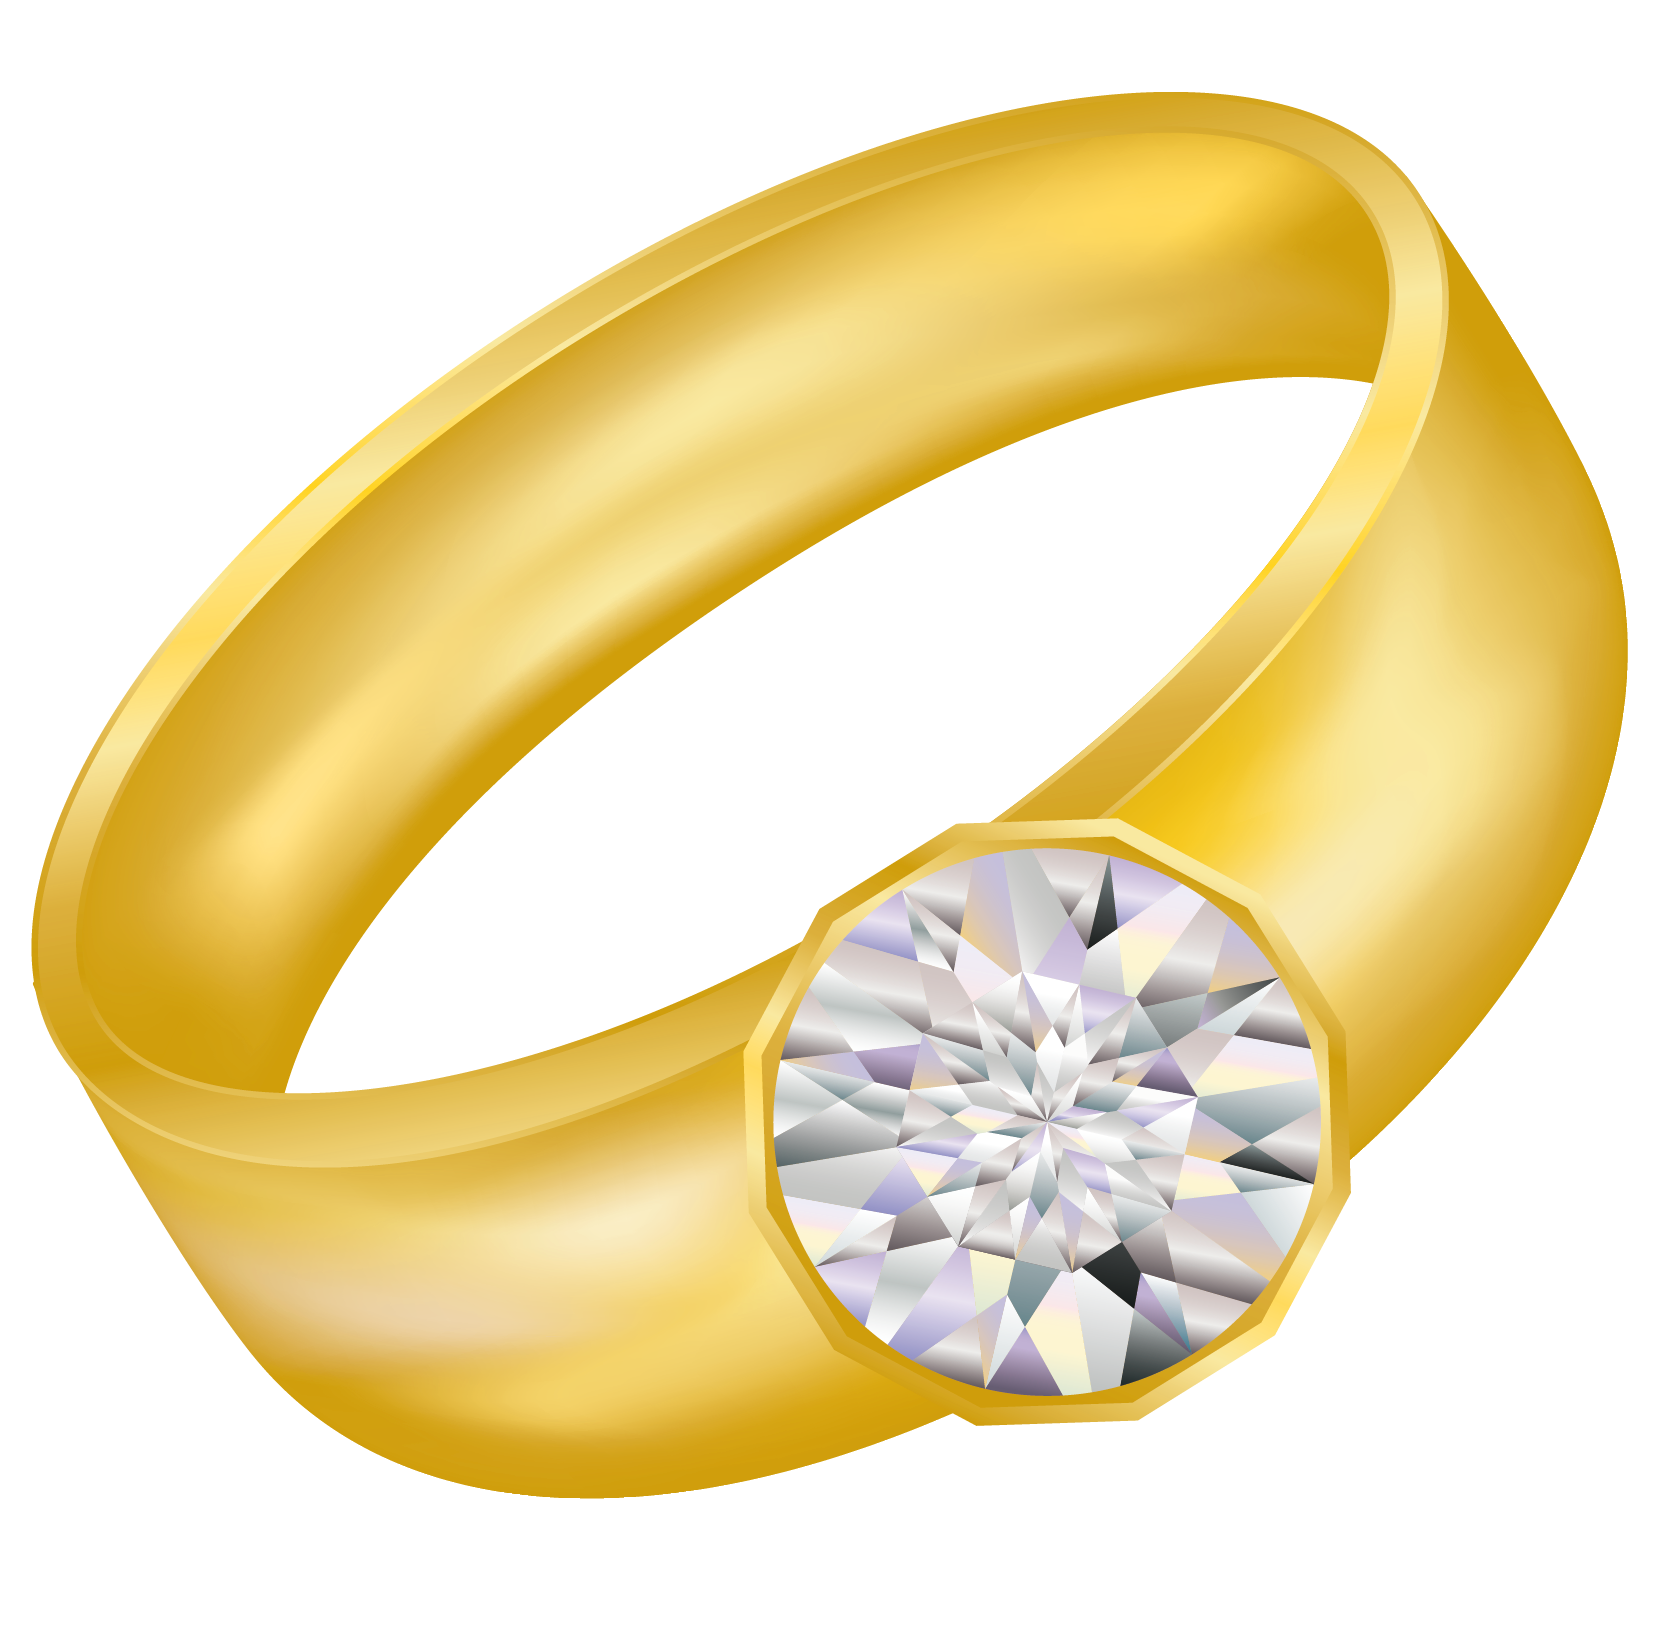 Diamond ring clip art free clipart images 3 clipartcow 3.